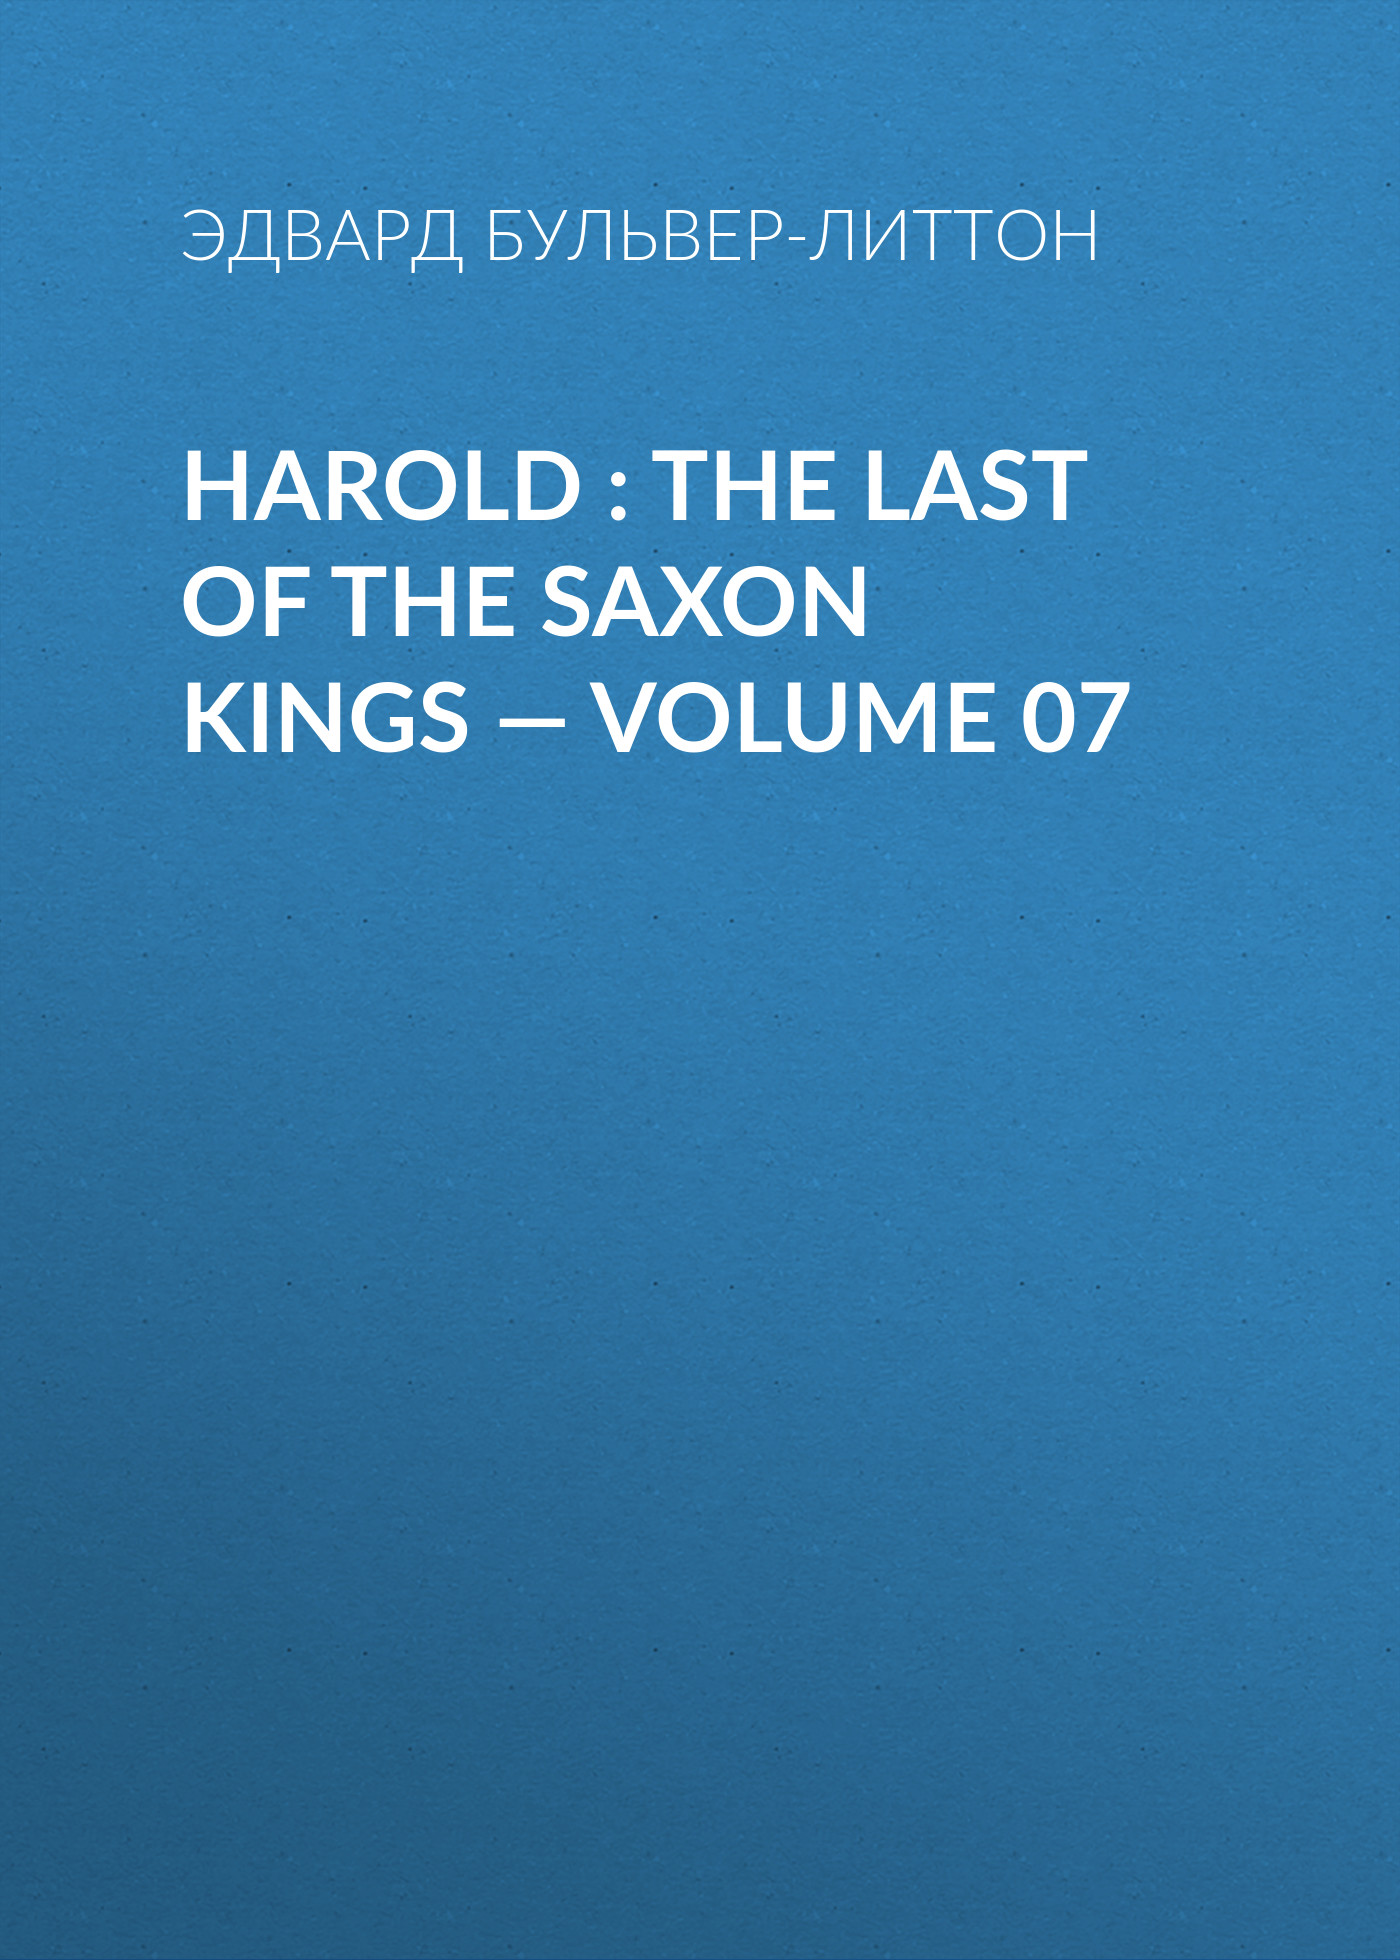 Эдвард Бульвер-Литтон Harold : the Last of the Saxon Kings — Volume 07 эдвард бульвер литтон harold the last of the saxon kings volume 06